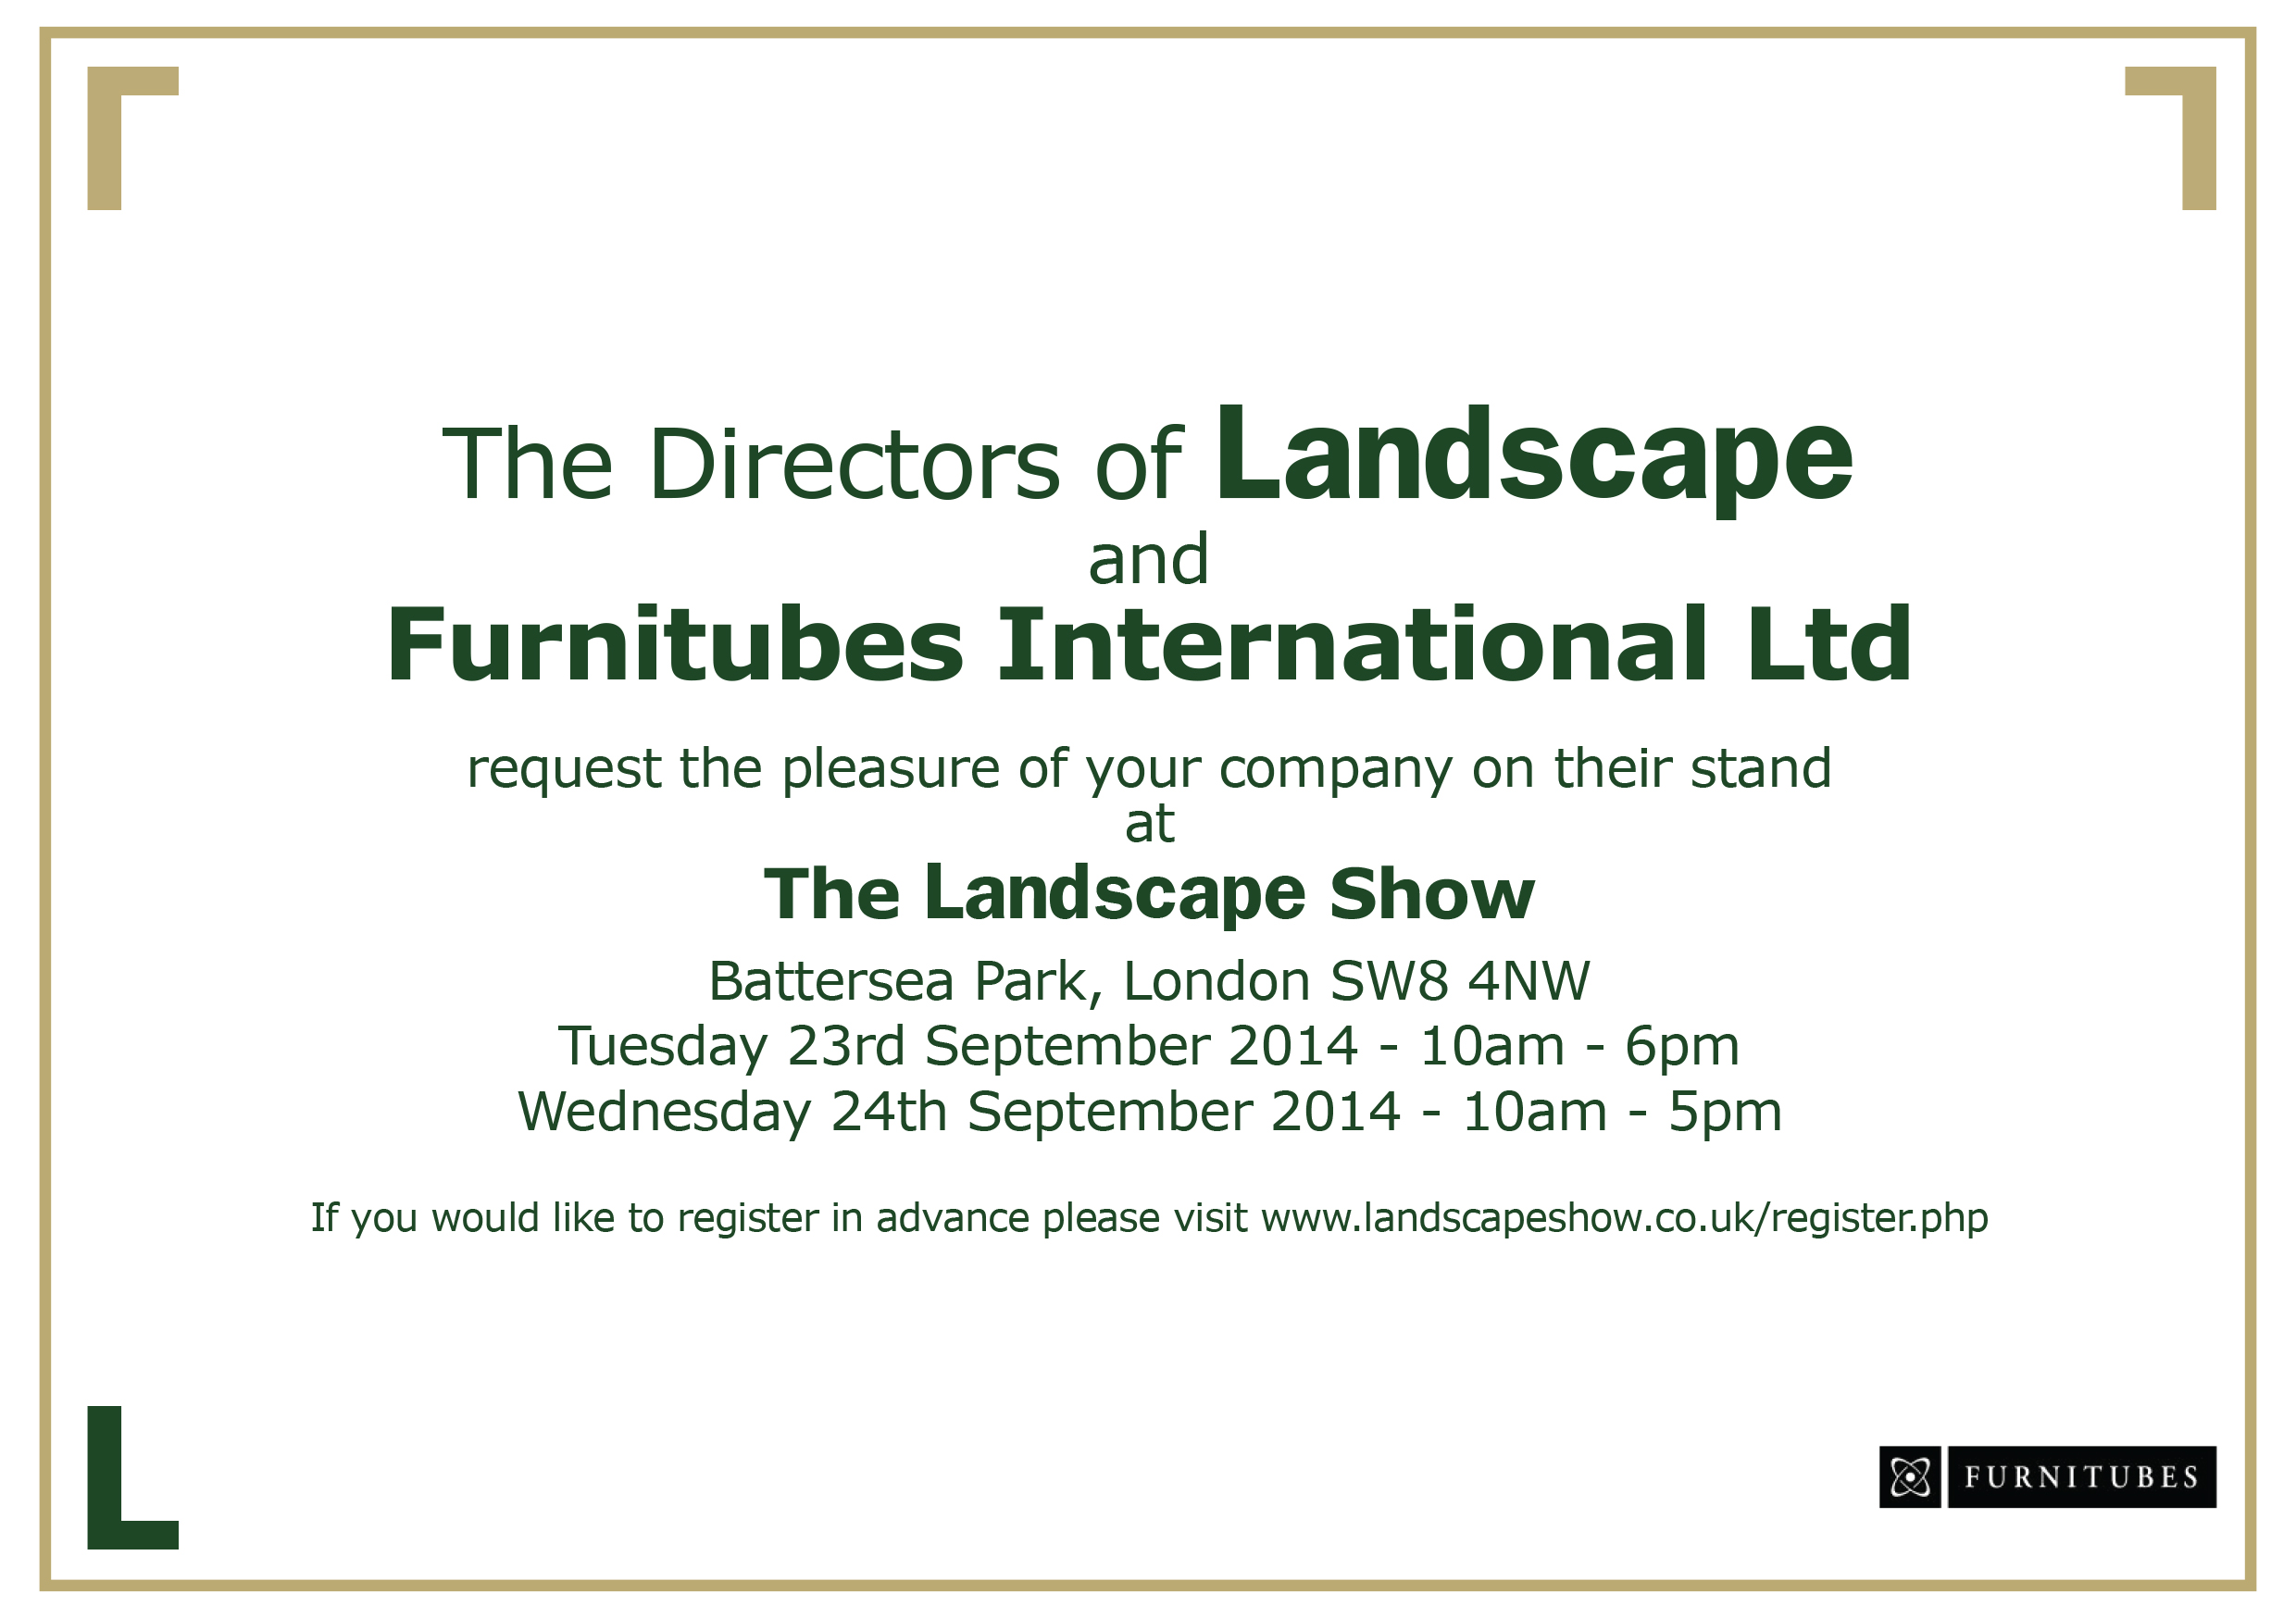 Furnitubes Invite to Landscape show